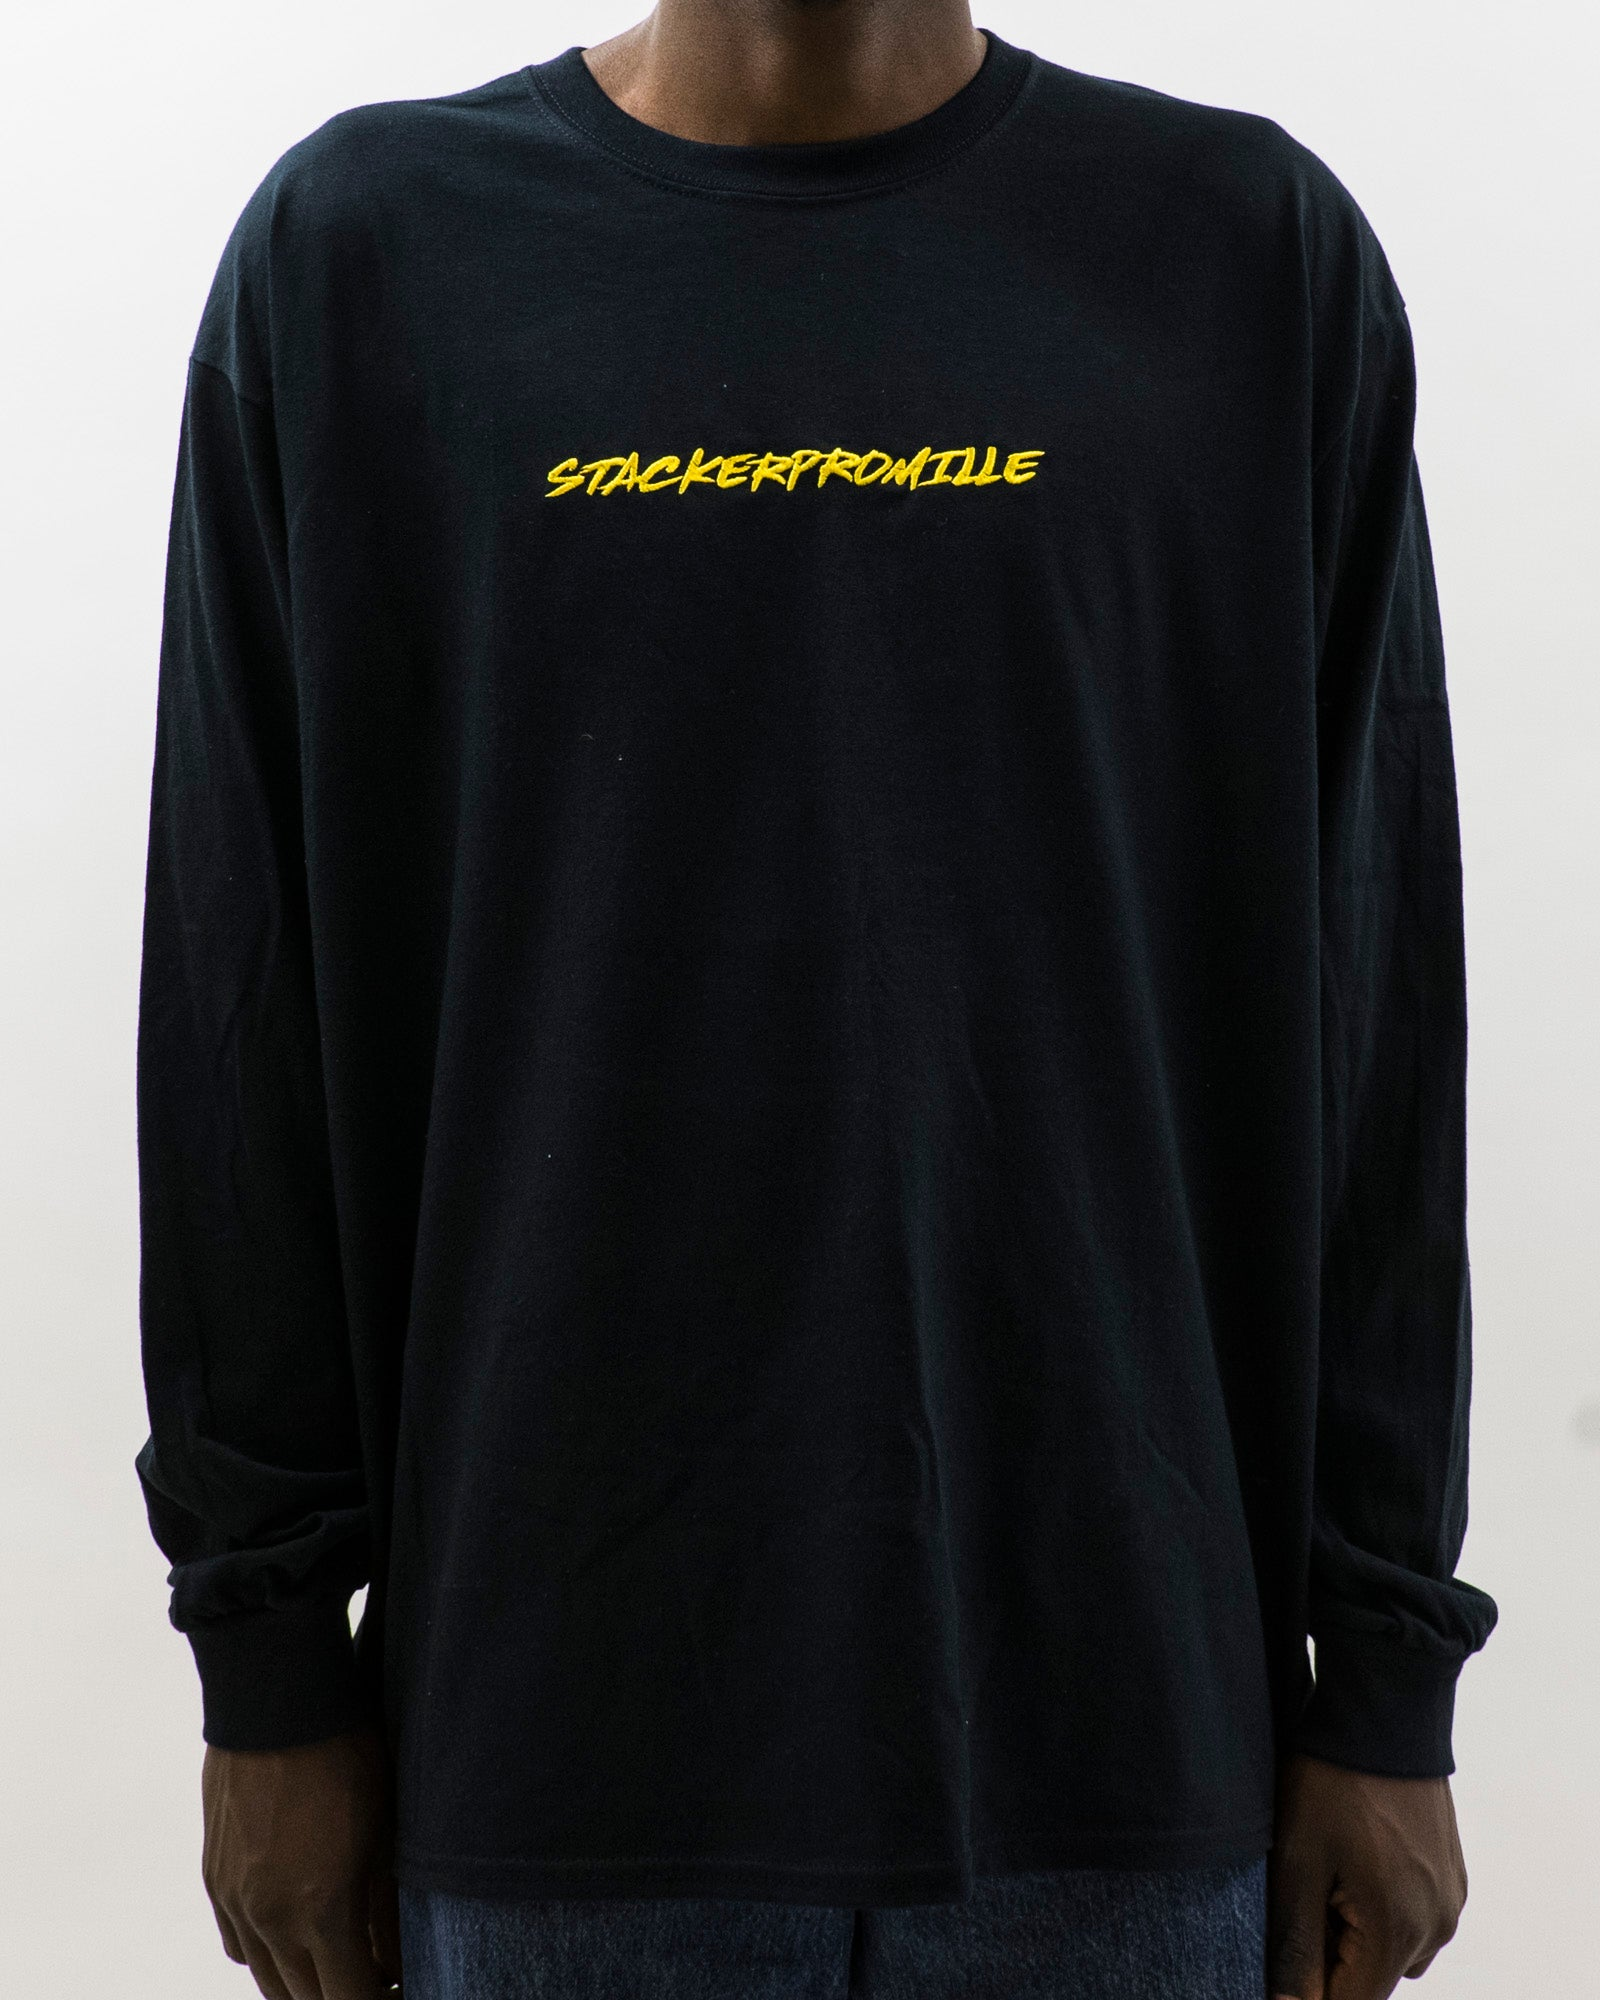 Stackerpromille - Longsleeve - Sort